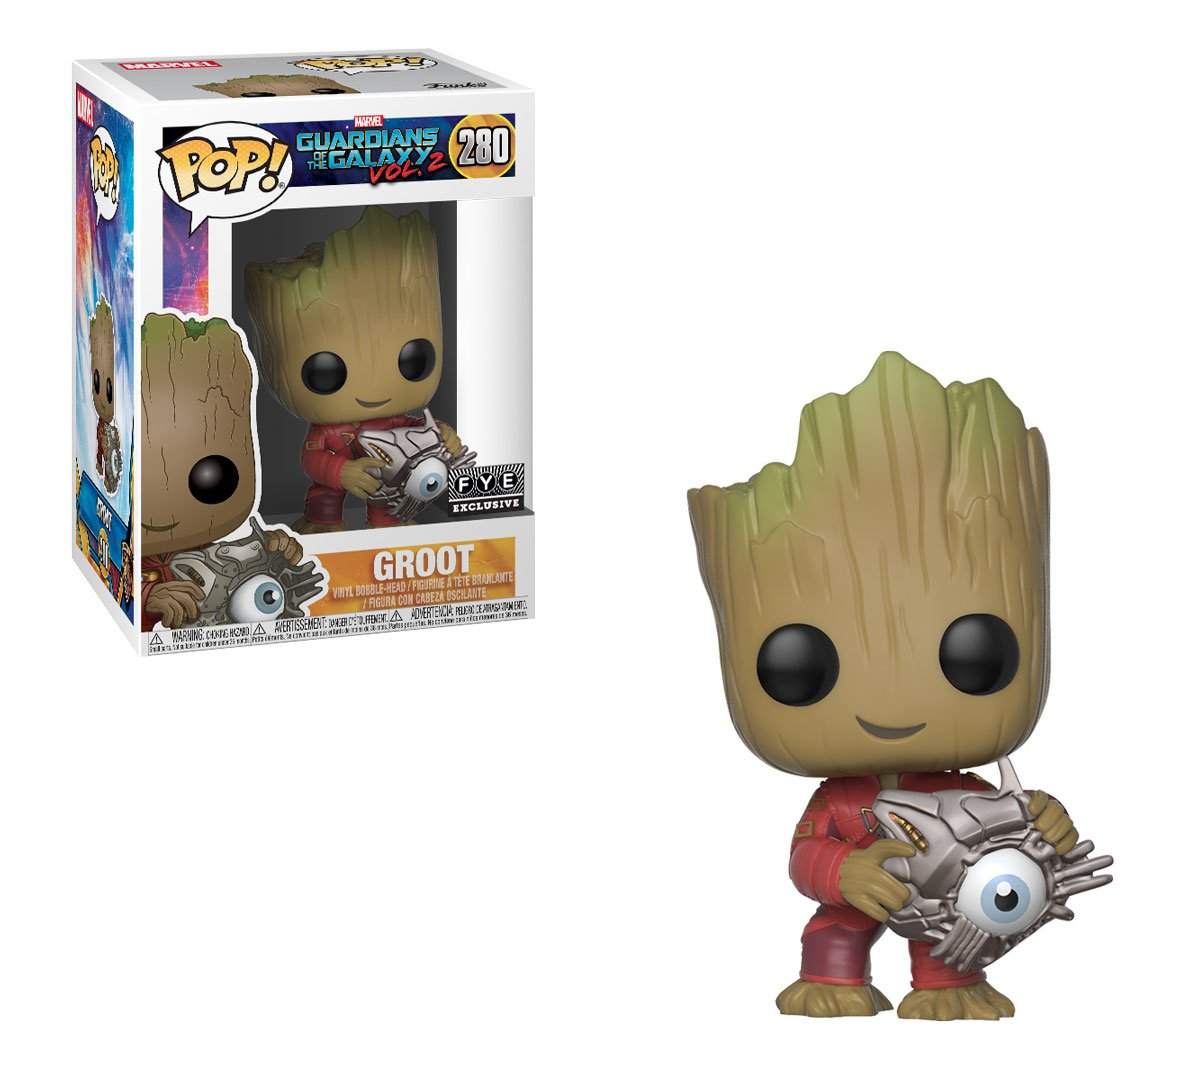 Funko's photo on Jardine